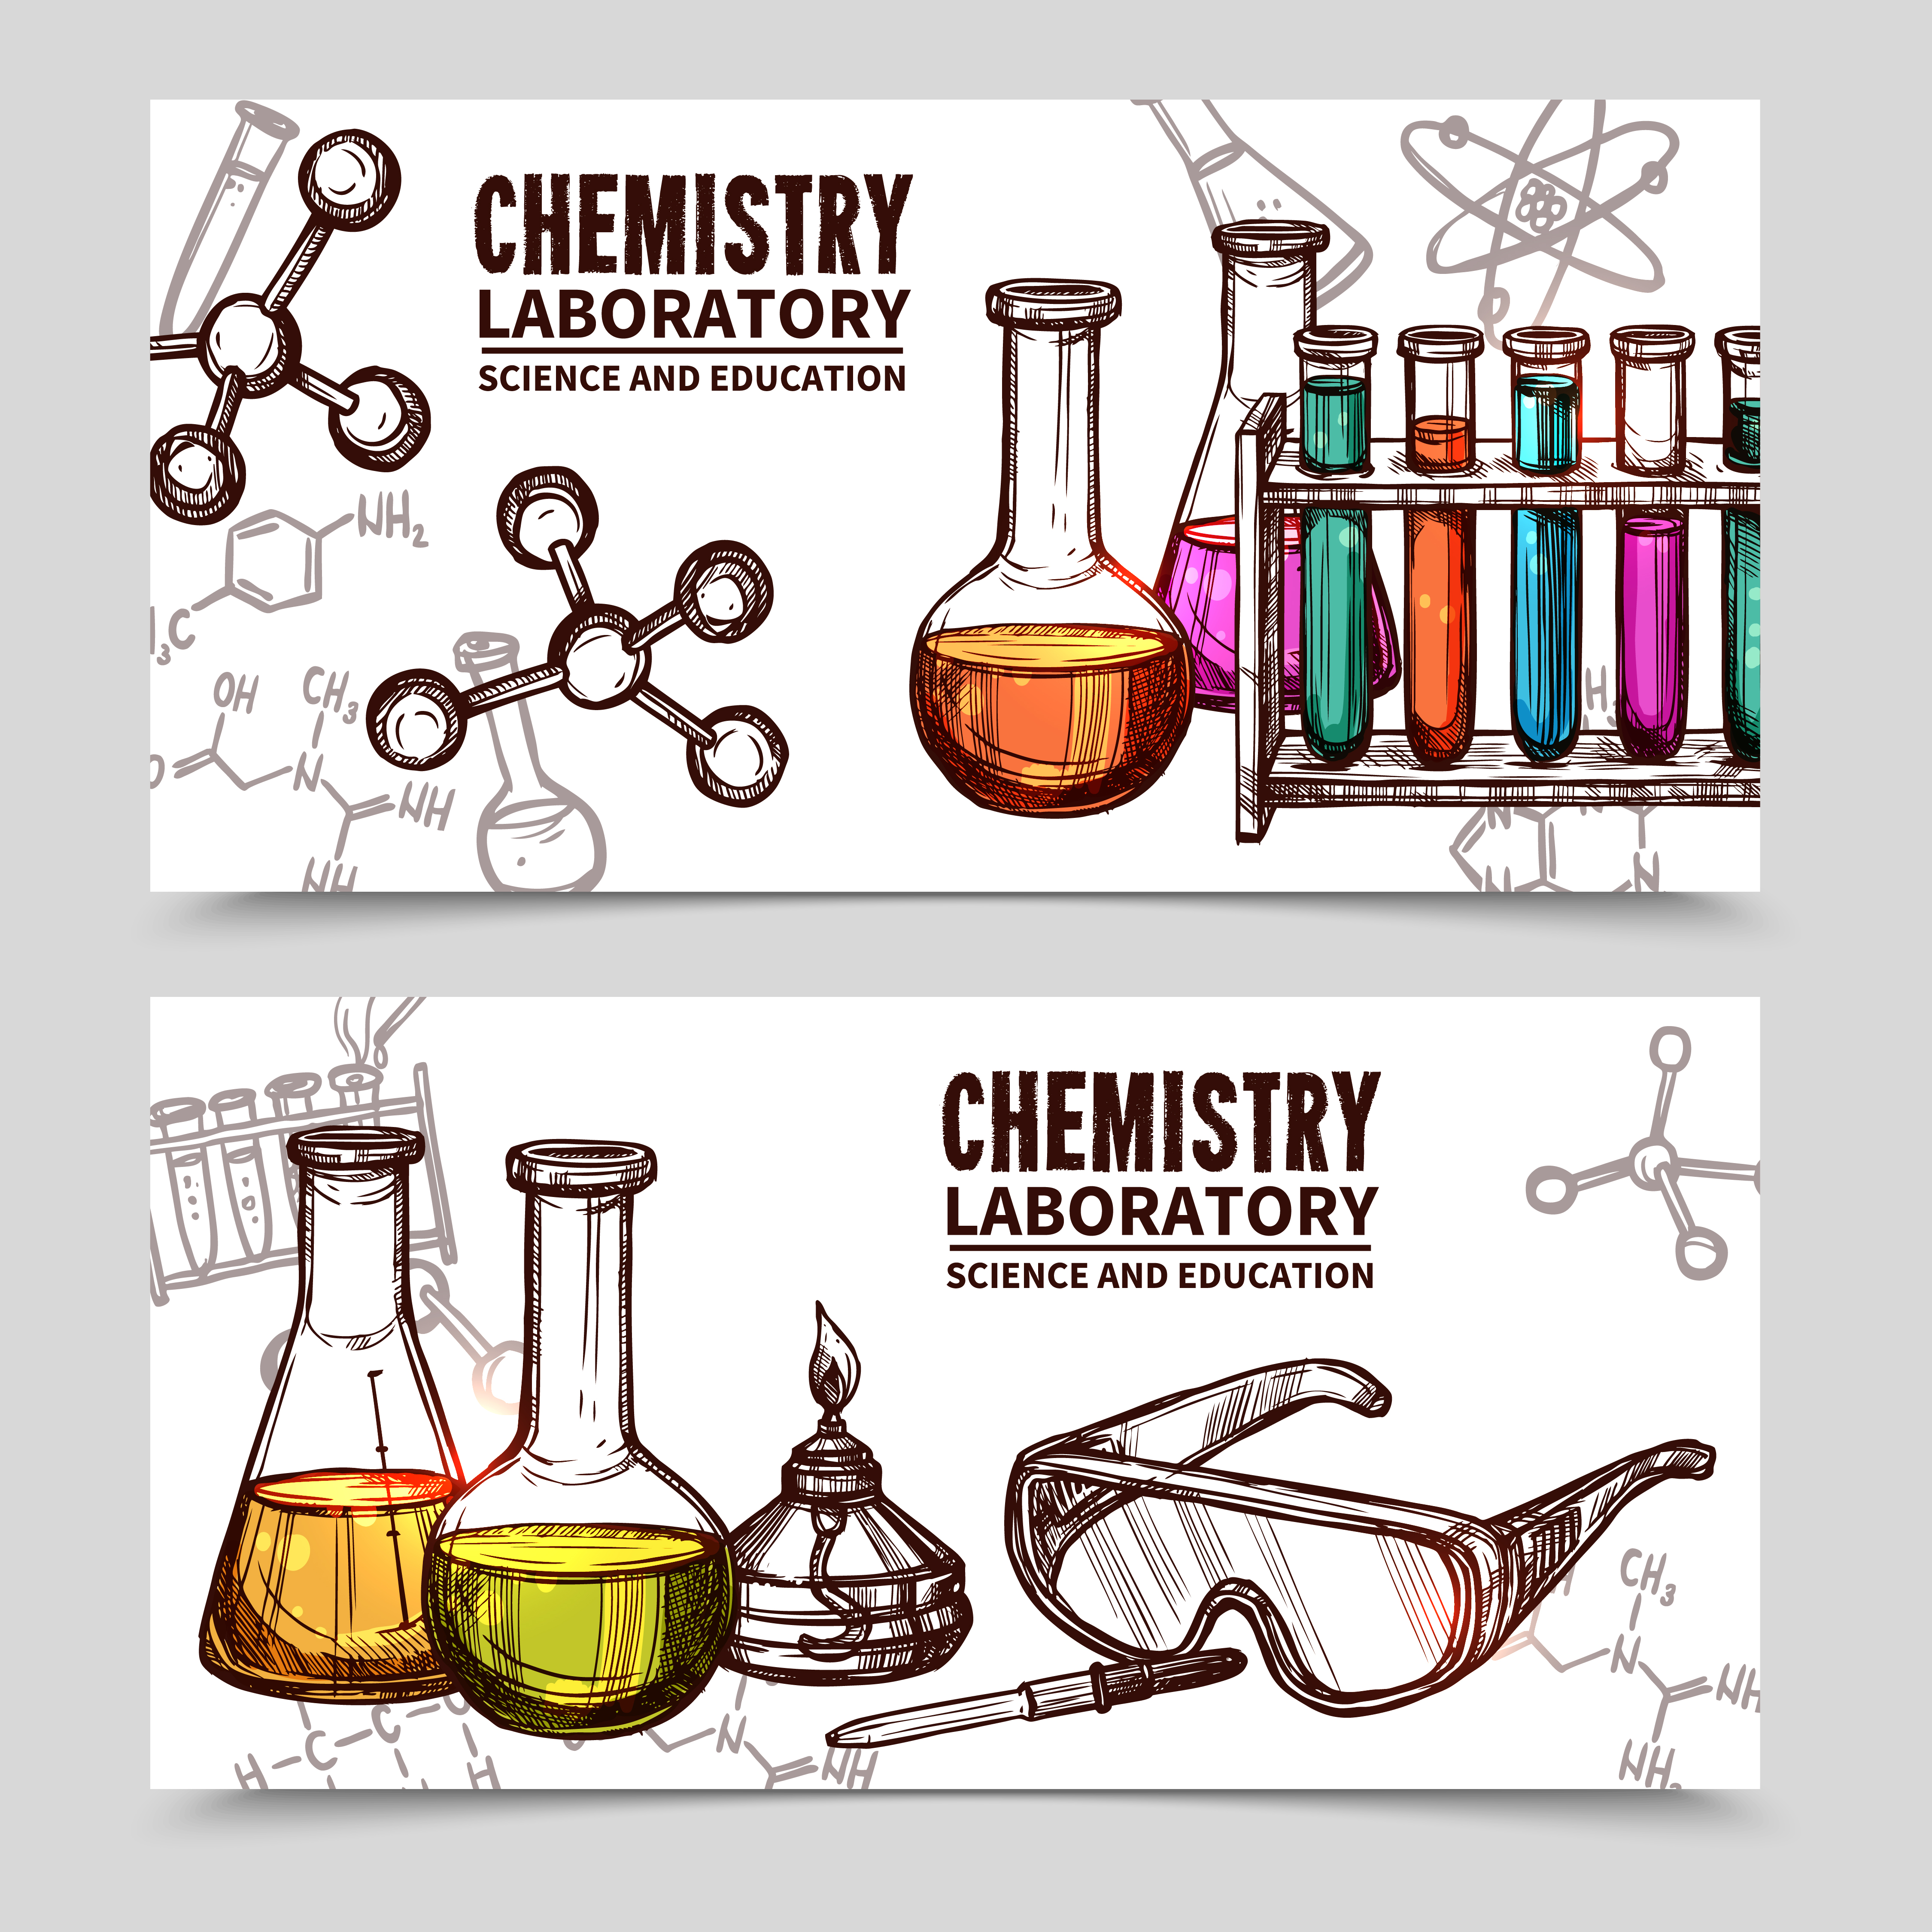 Chemistry Laboratory Sketch Banners - Download Free ... |Lab Chemist Drawings